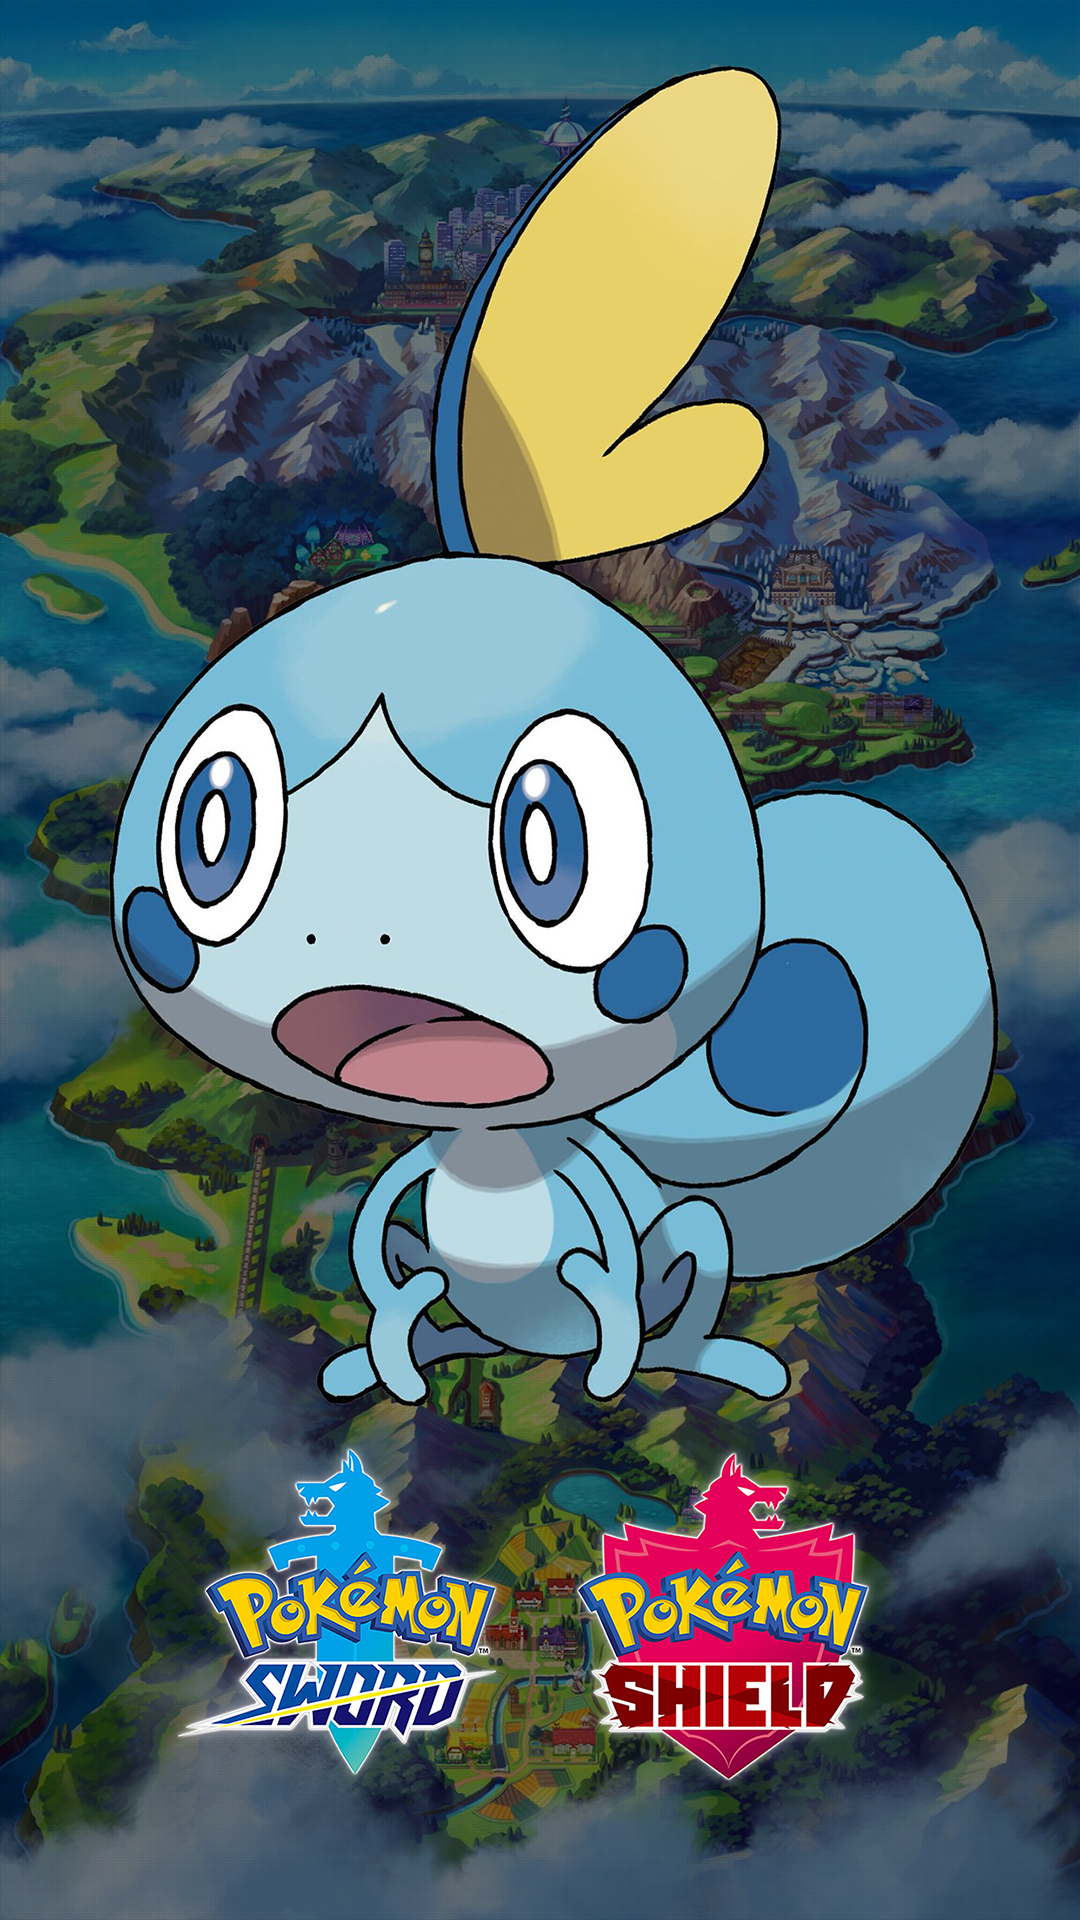 Iphone 6s Plus Wallpaper Size Pokemon Sword And Shield Sobble Wallpapers Cat With Monocle